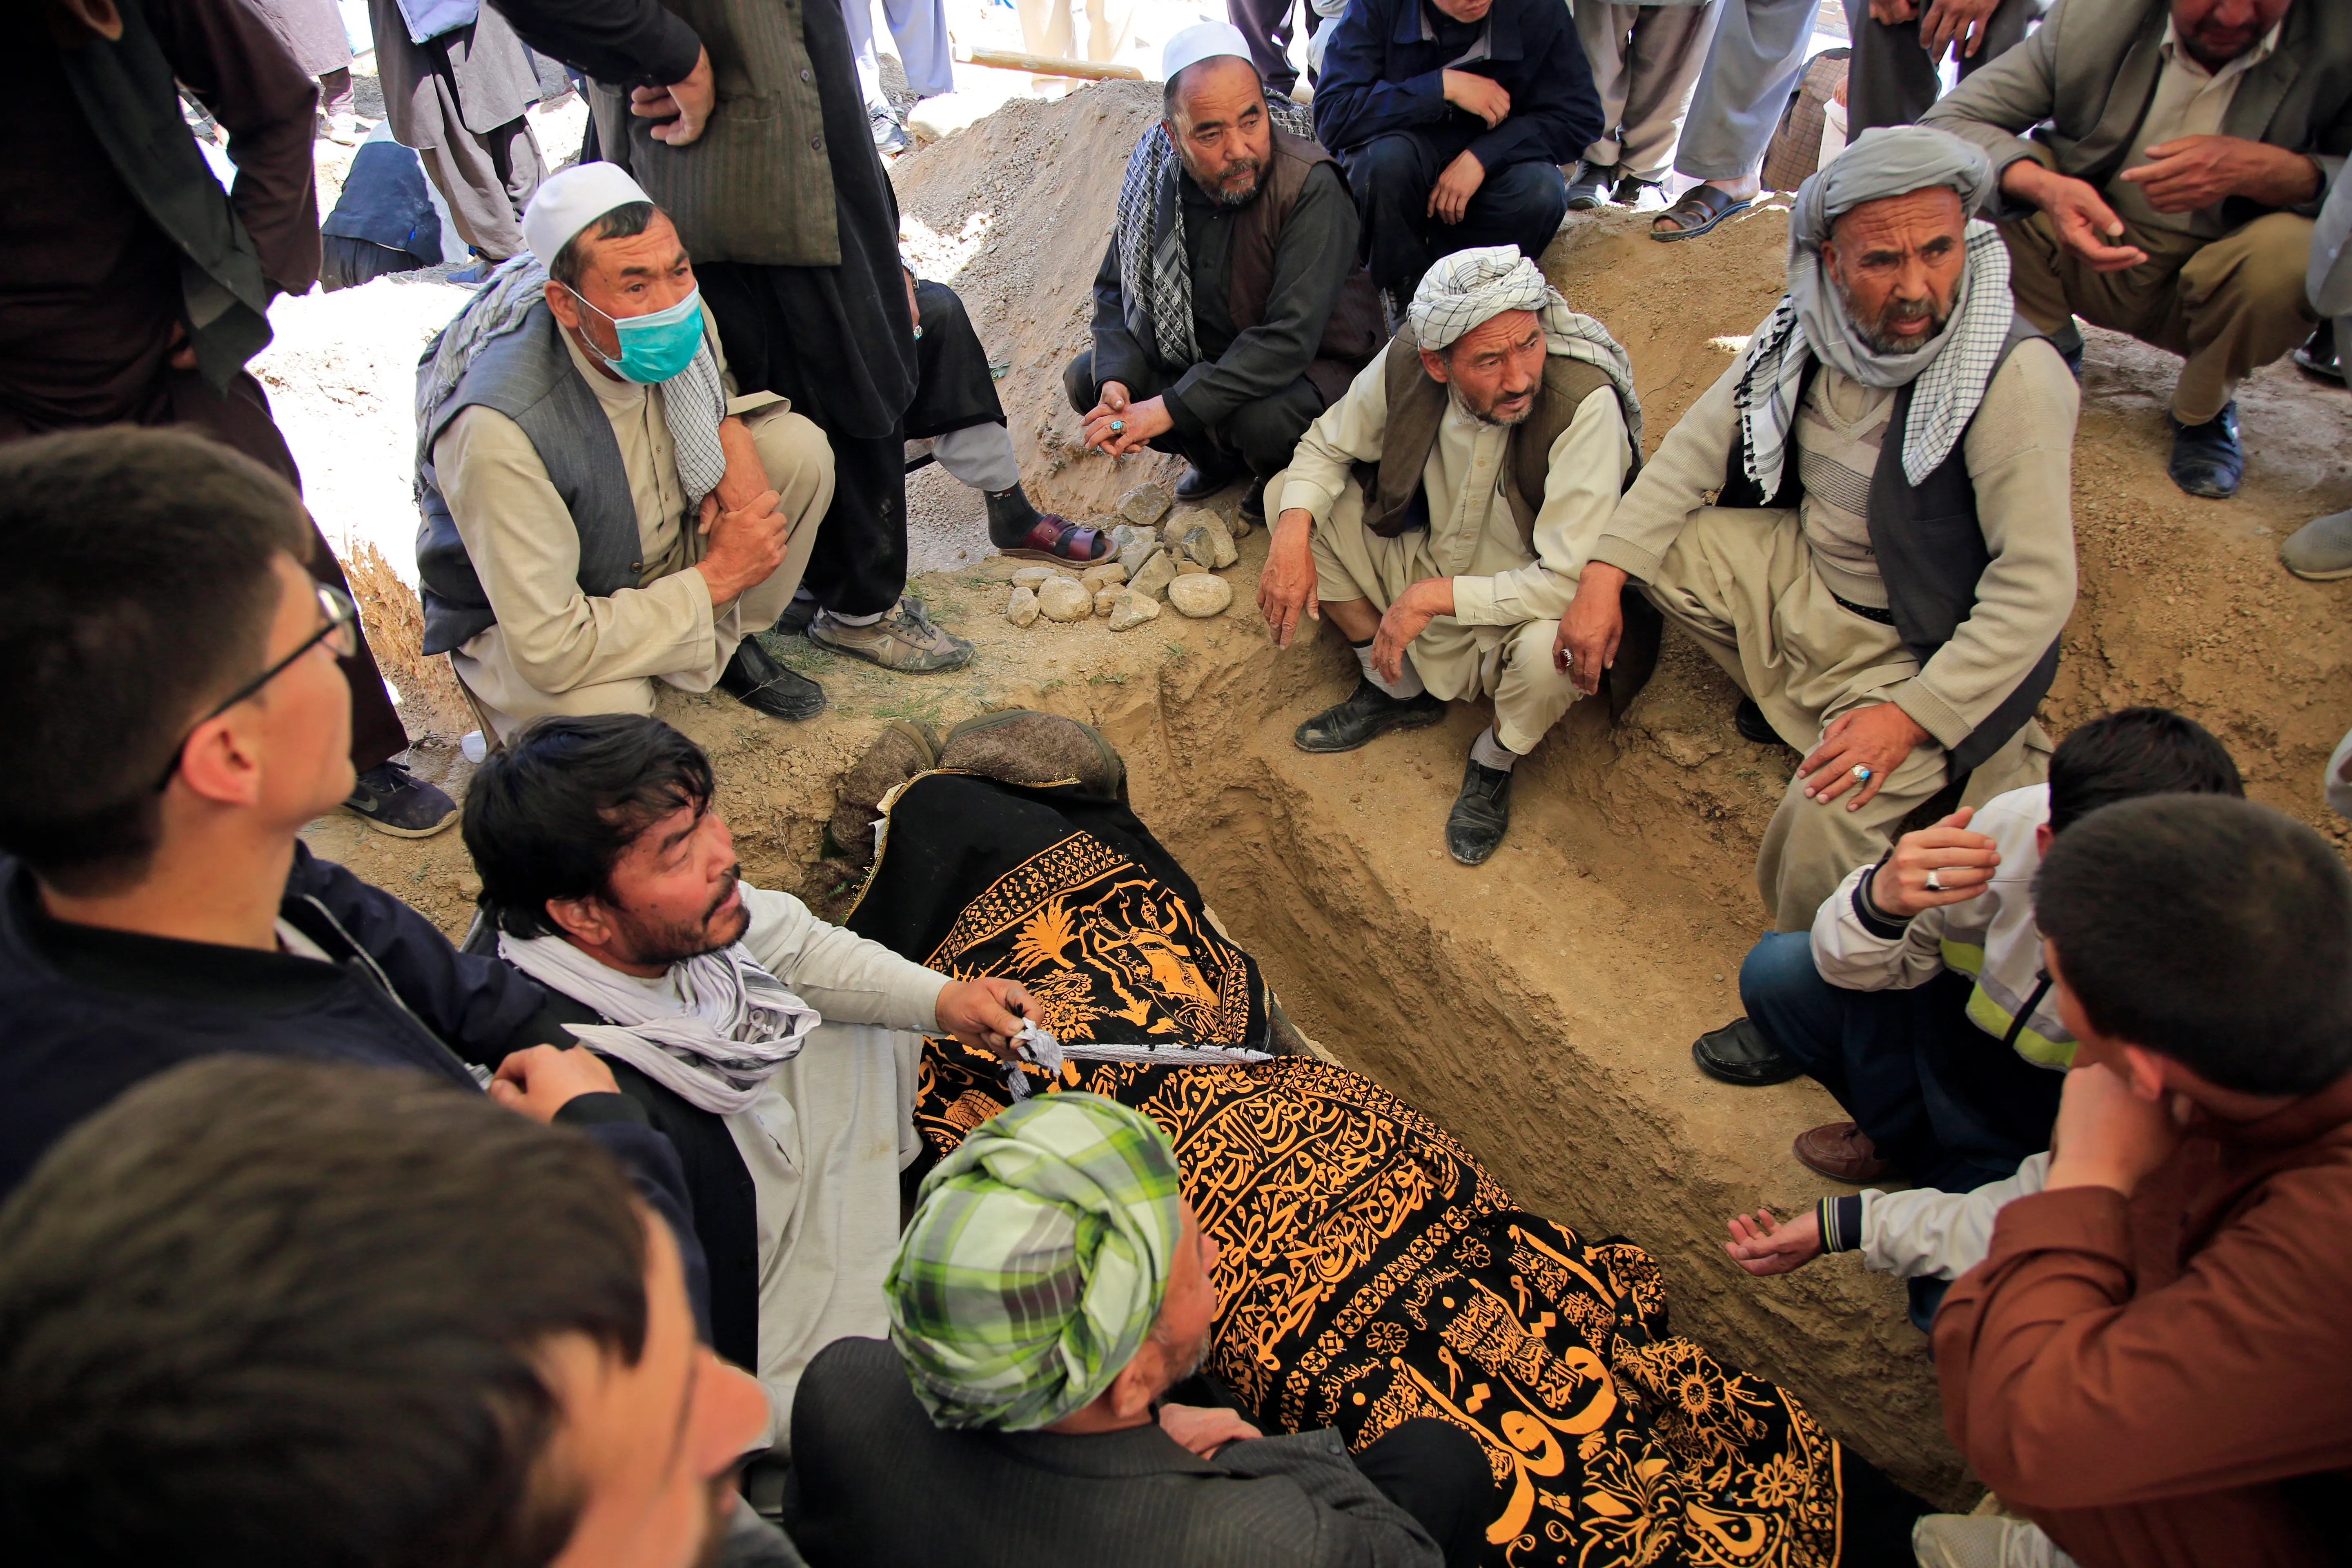 Afghan men bury a victim of deadly attacks on May 8 near a school in a cemetery west of Kabul, Afghanistan on May 9, 2021. The Interior Ministry on Sunday announced the terrible toll bomb attacks at the entrance to a girls' school.  in the Afghan capital has soared to around 50 people, many of whom were students between the ages of 11 and 15, and the number of injured in Saturday's attack also rose to more than 100.